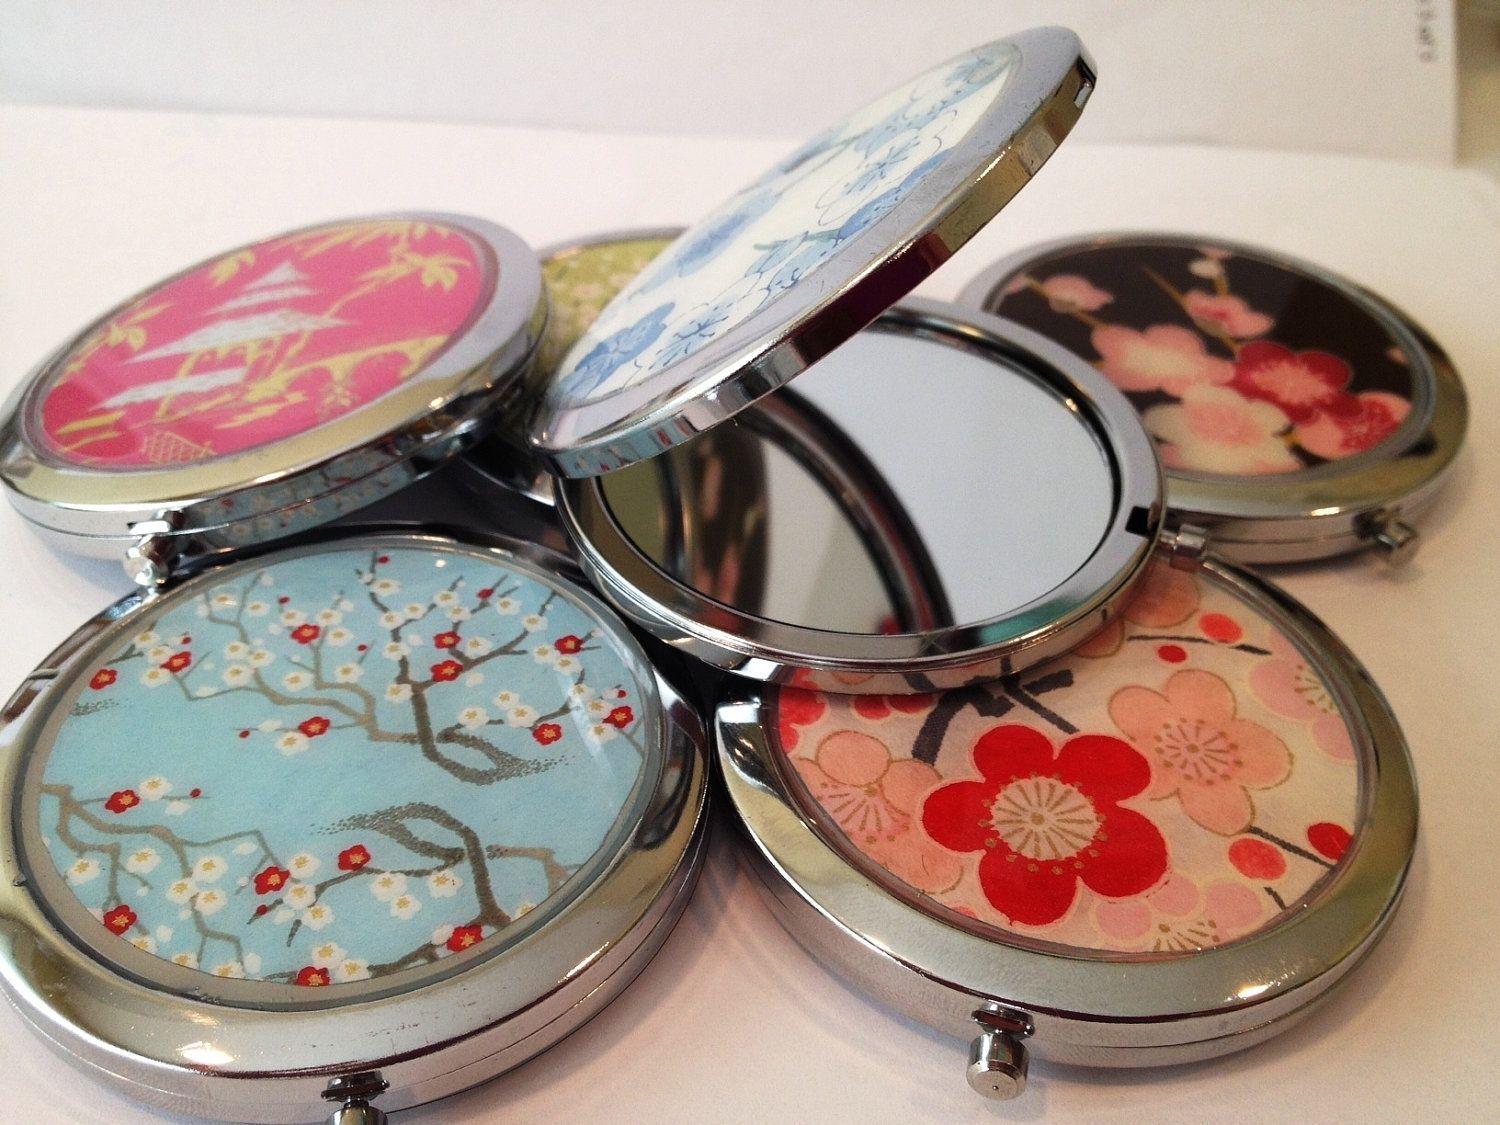 Handmade Custom Double Sided Compact Mirrors By Glassology